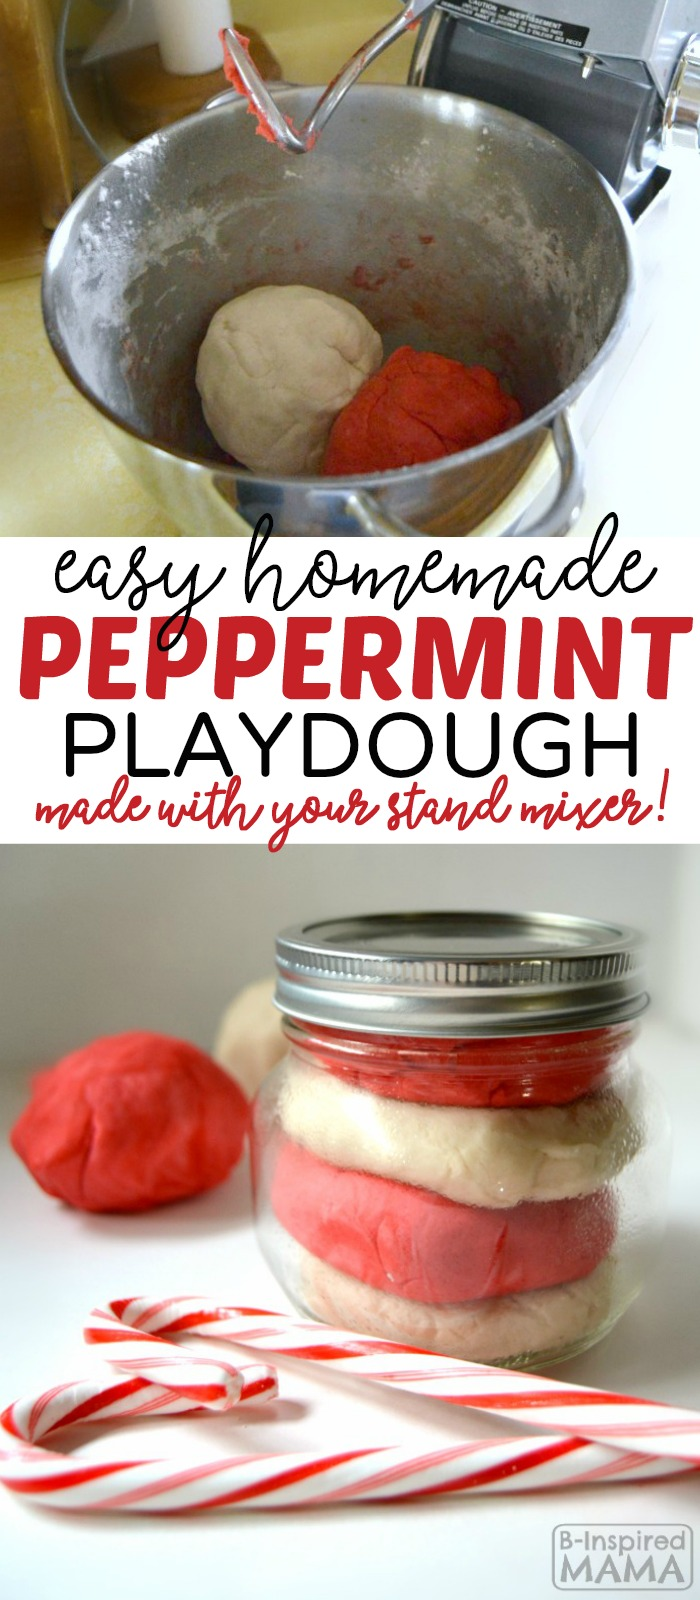 Using your stand mixer makes this homemade playdough recipe super easy! Plus use food coloring a peppermint extract to make it festive for Christmas, too!